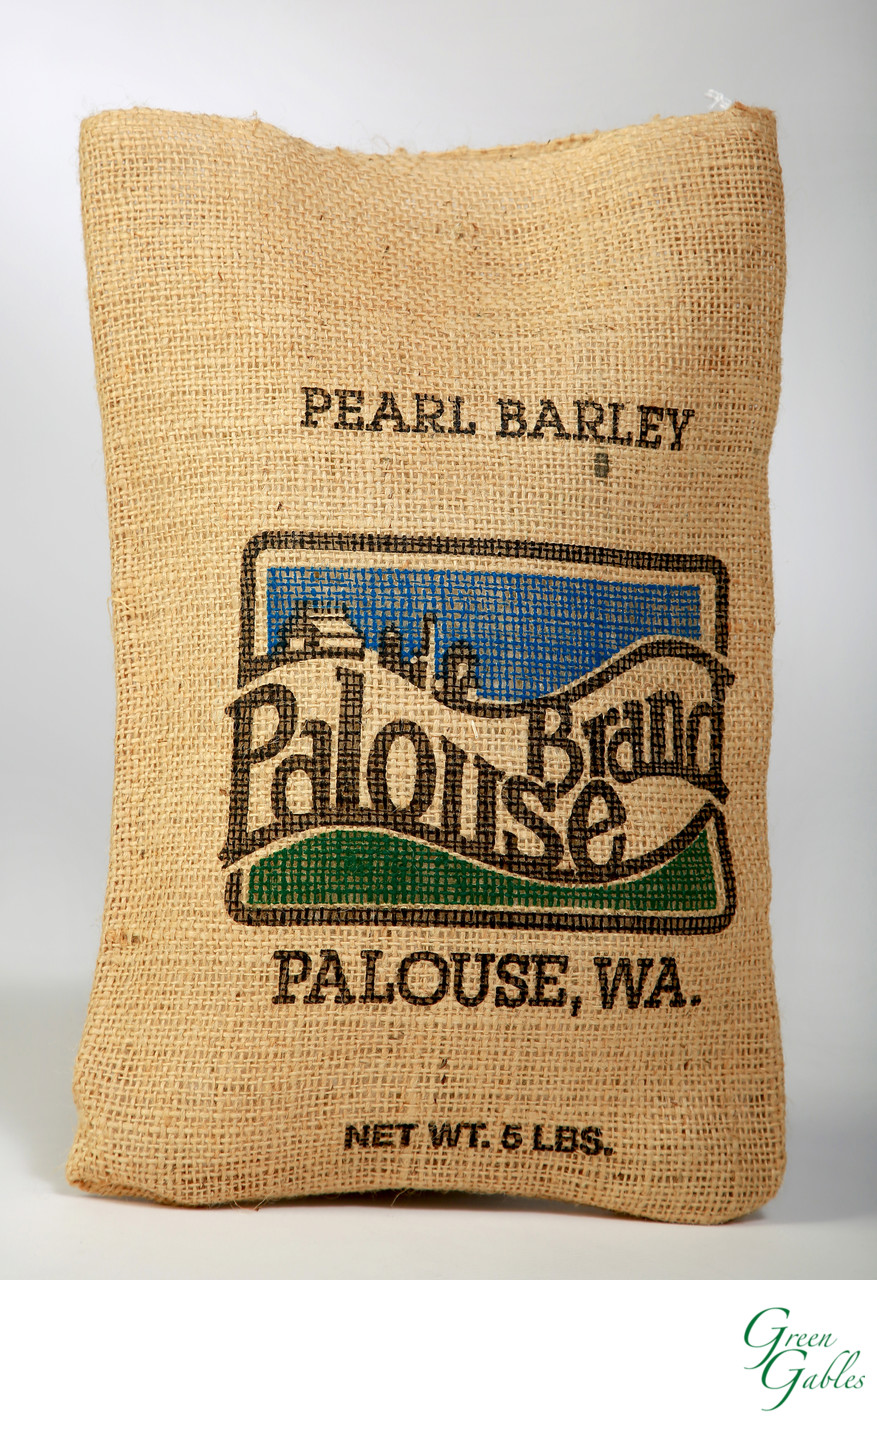 Justus Bag Co. Spokane, WA, Palouse Brand Barley